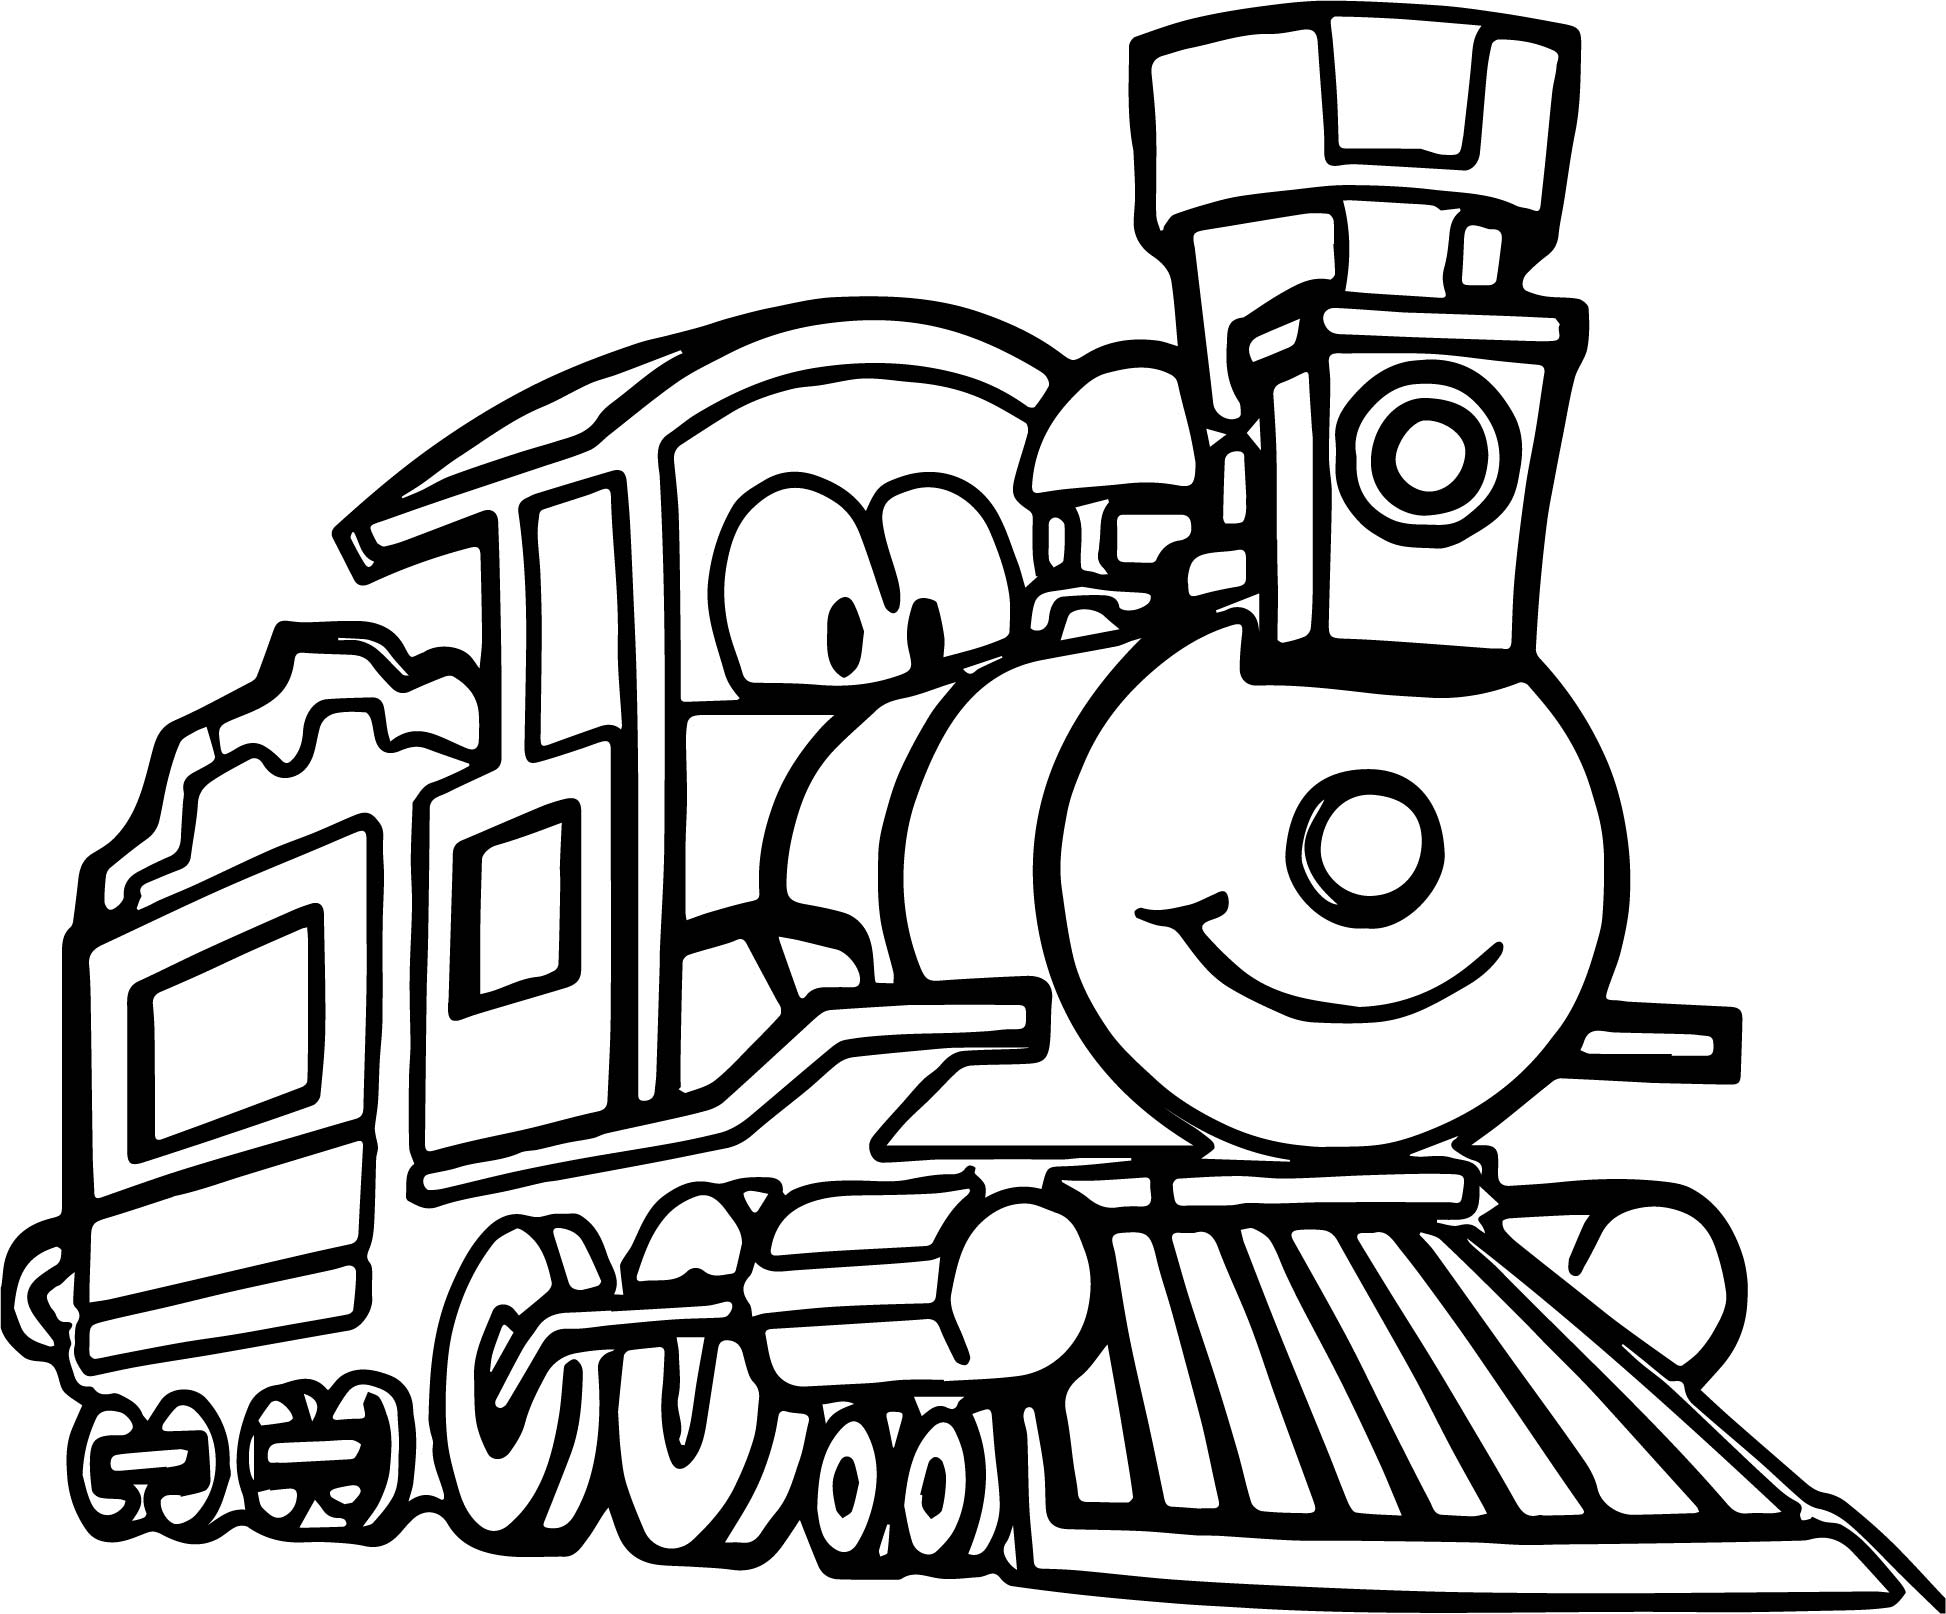 printable steam train coloring pages steam train coloring pages sketch coloring page steam printable coloring train pages